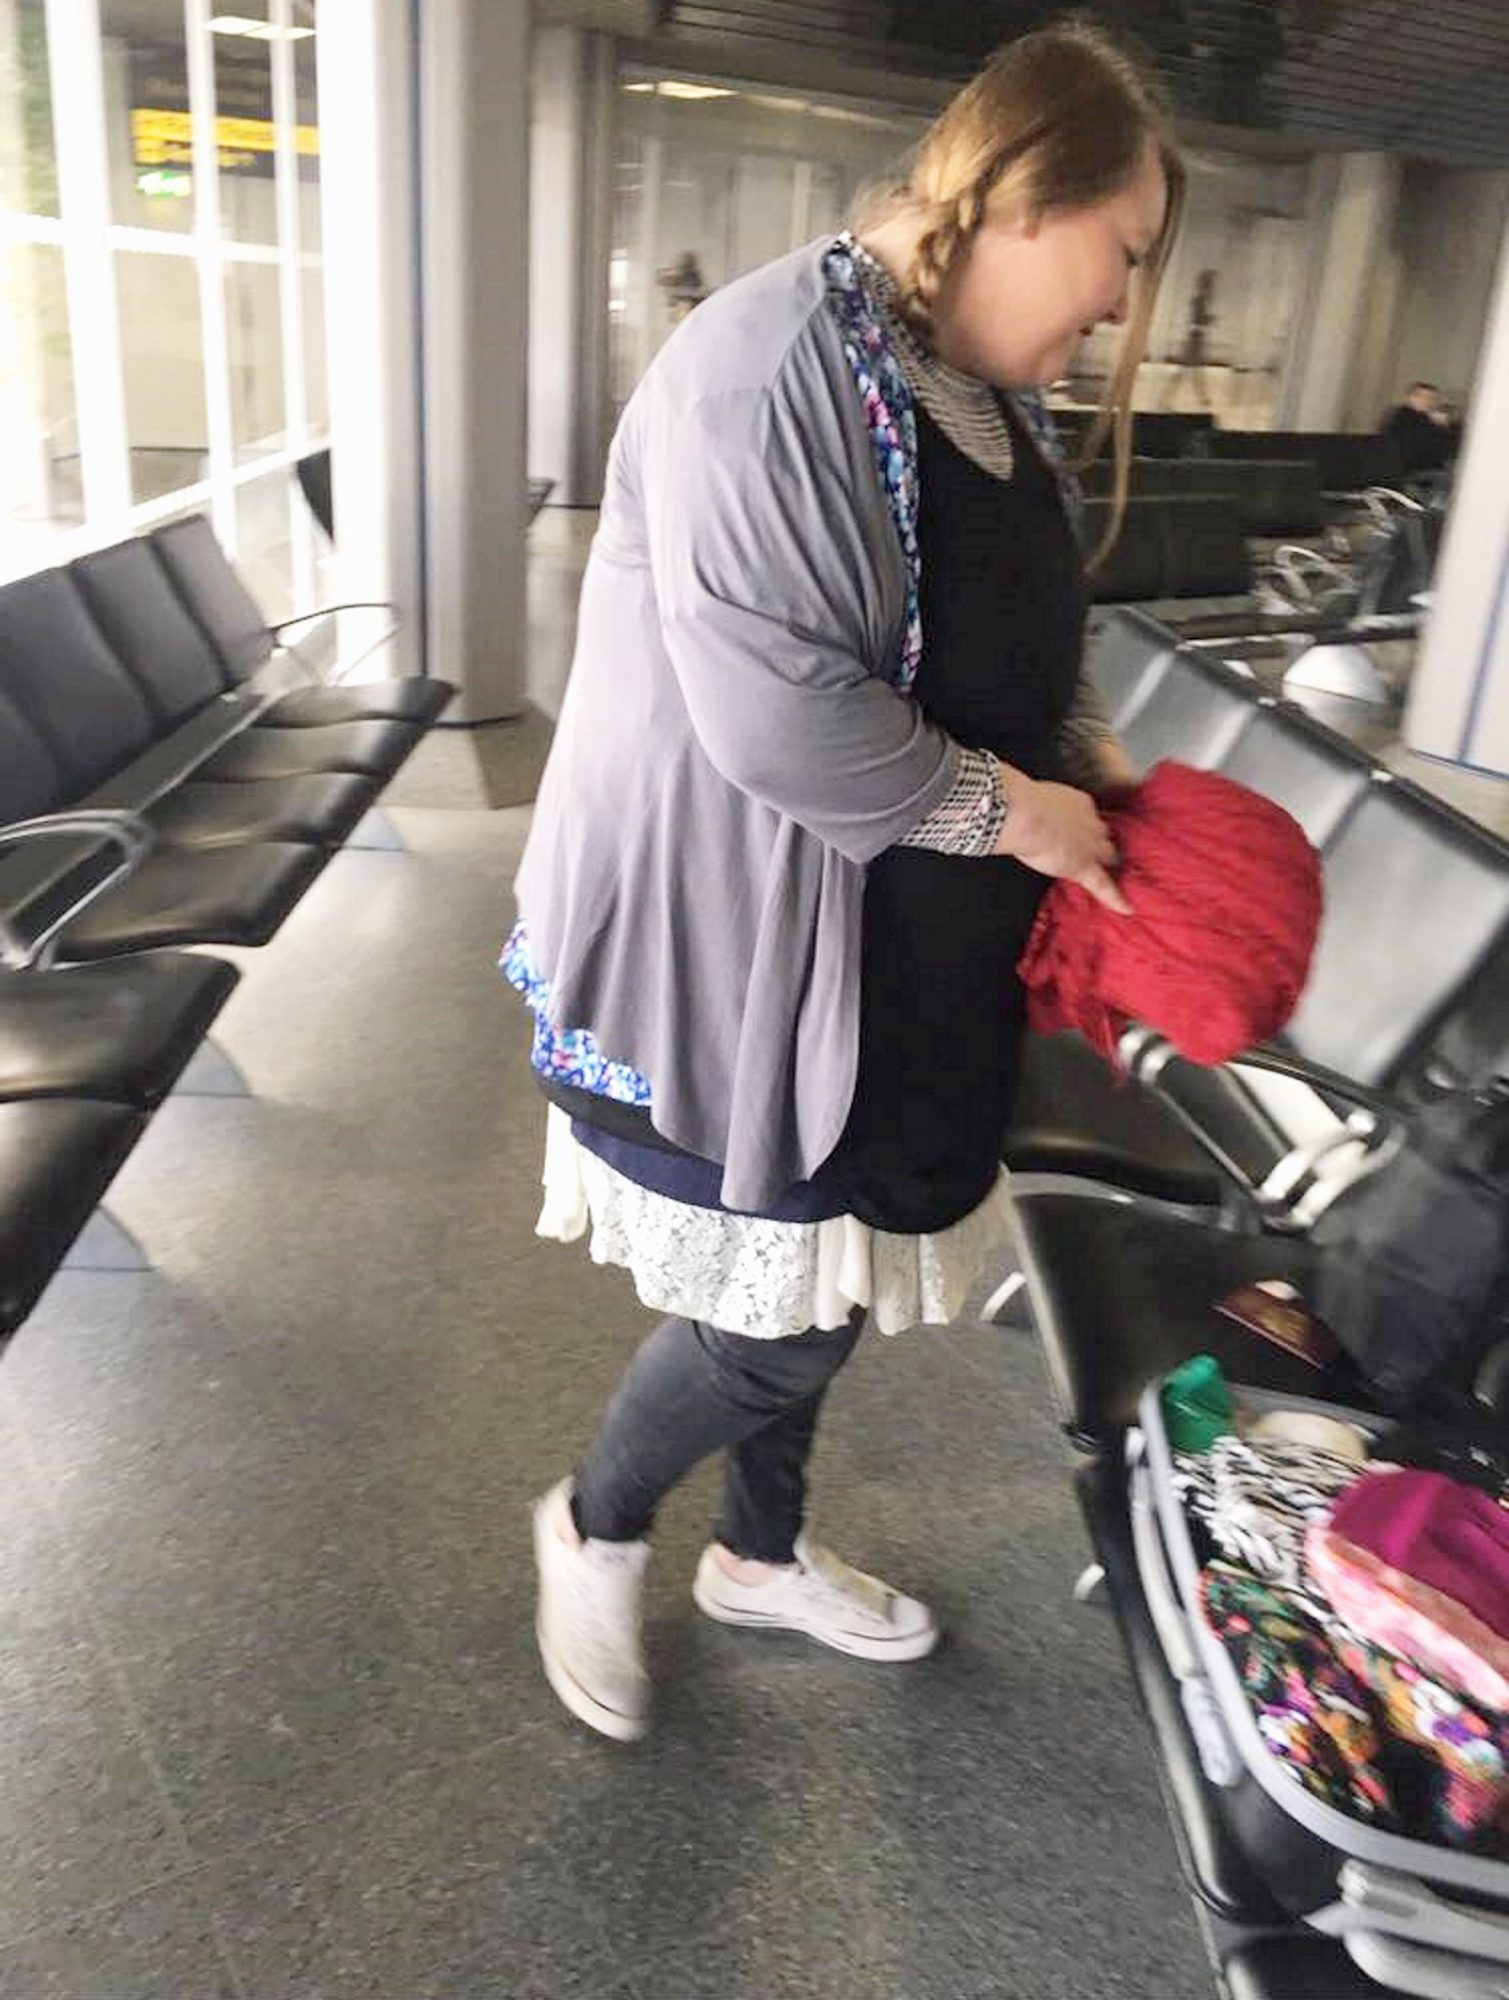 A mum dodged Thomas Cook's baggage charges by taking a leaf out of Joey from Friends' book to board the plane - wearing more than THREE KILOS of her own clothes.